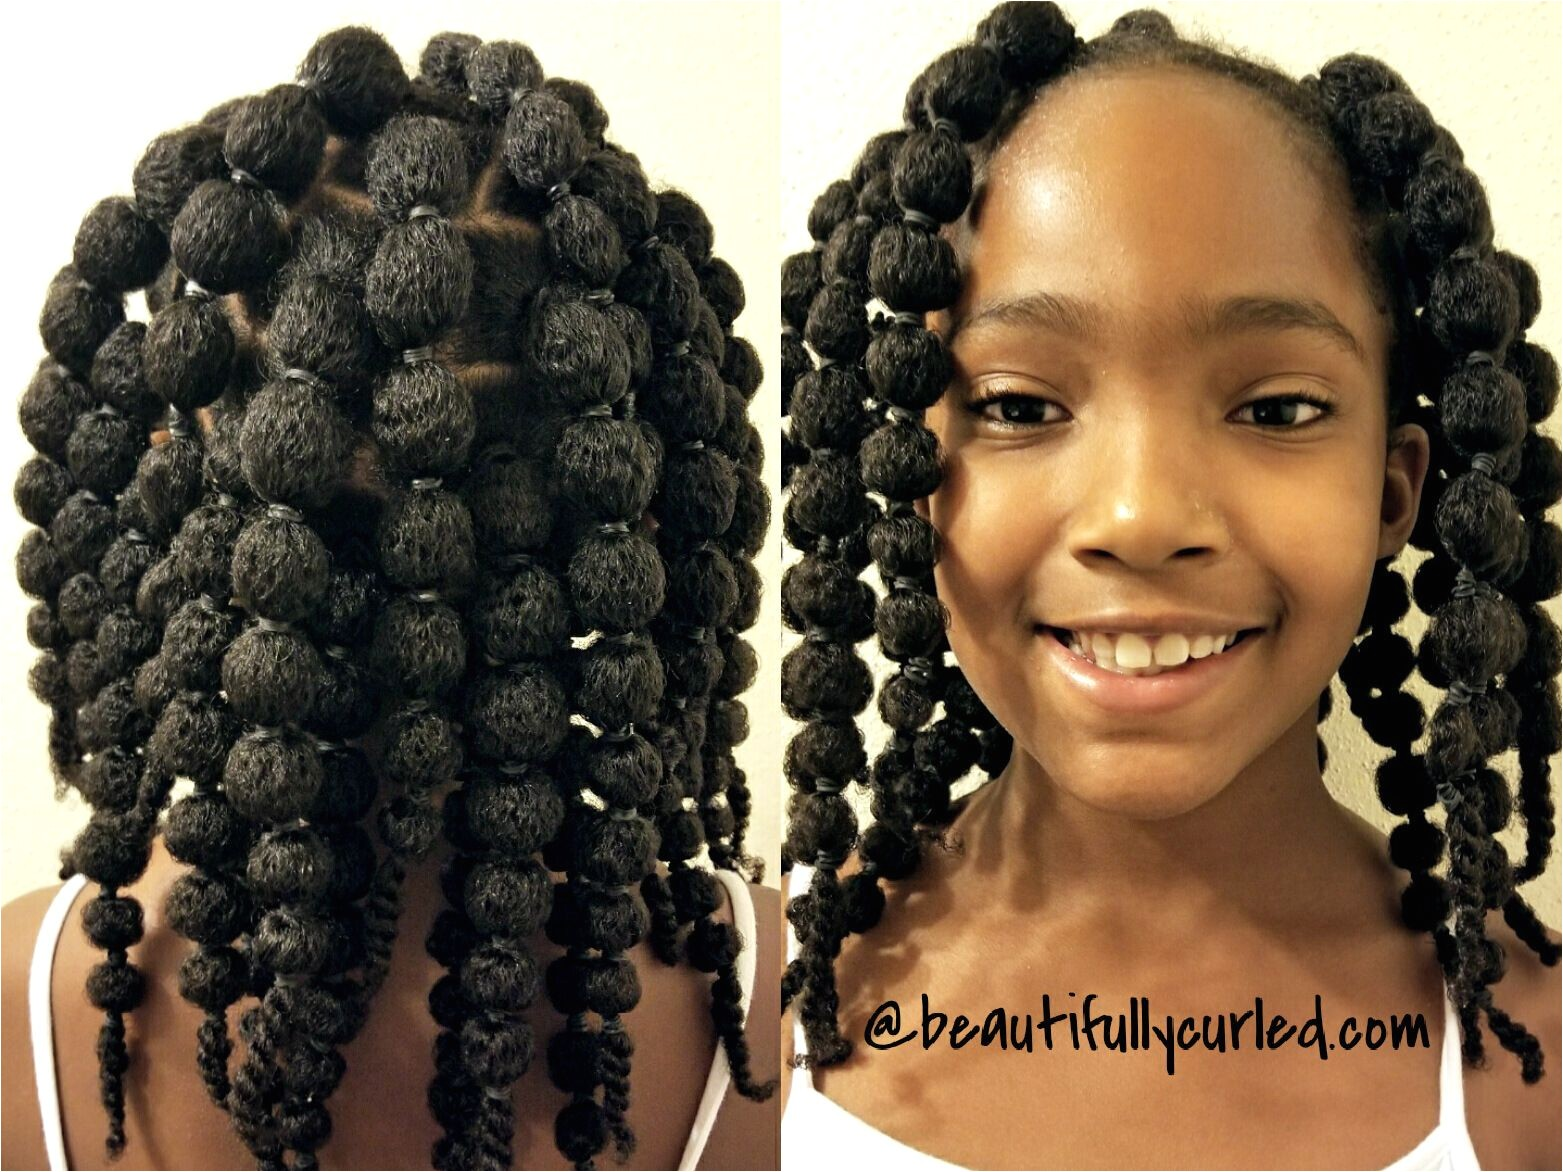 Cute Easy Hairstyles for Mixed Girls Cute and Easy Hair Puff Balls Hairstyle for Little Girls to